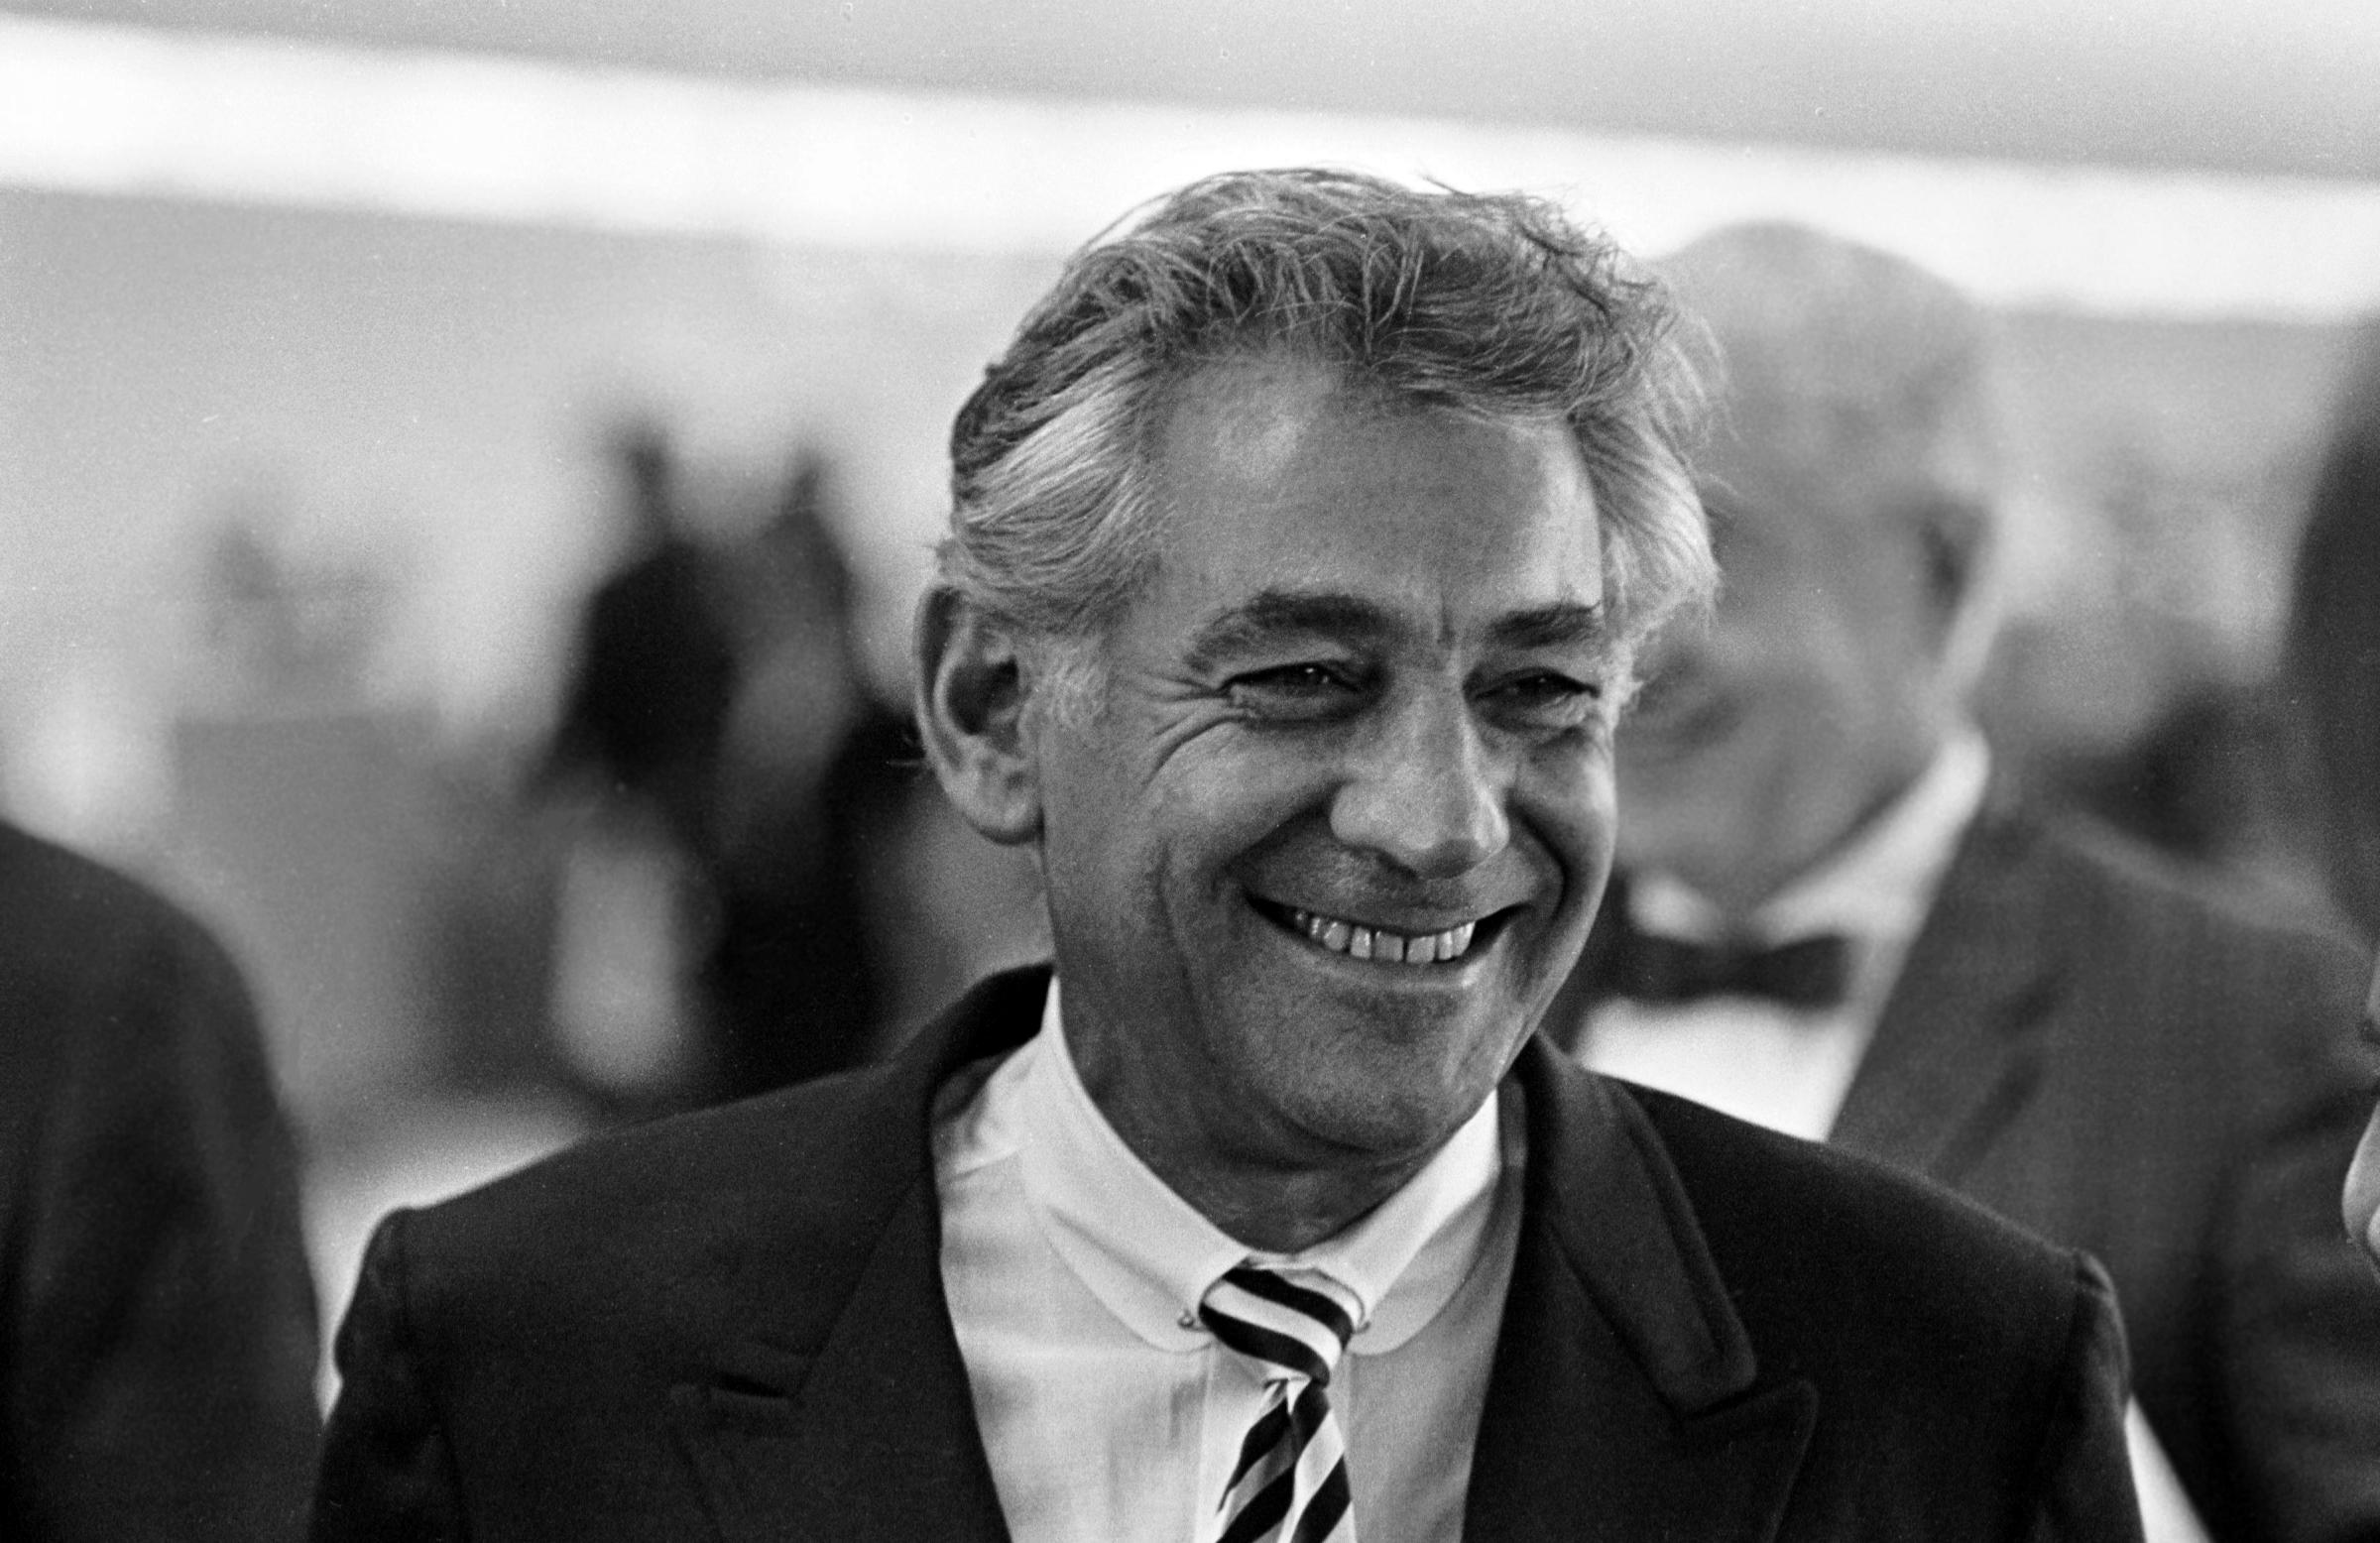 leonard bernstein Leonard bernstein (1918-1990) was a celebrity american conductor and composer as principal conductor and music director of the new york philharmonic, he was without peer, so much so that the orchestra had a difficult time recovering when he departed the podium.